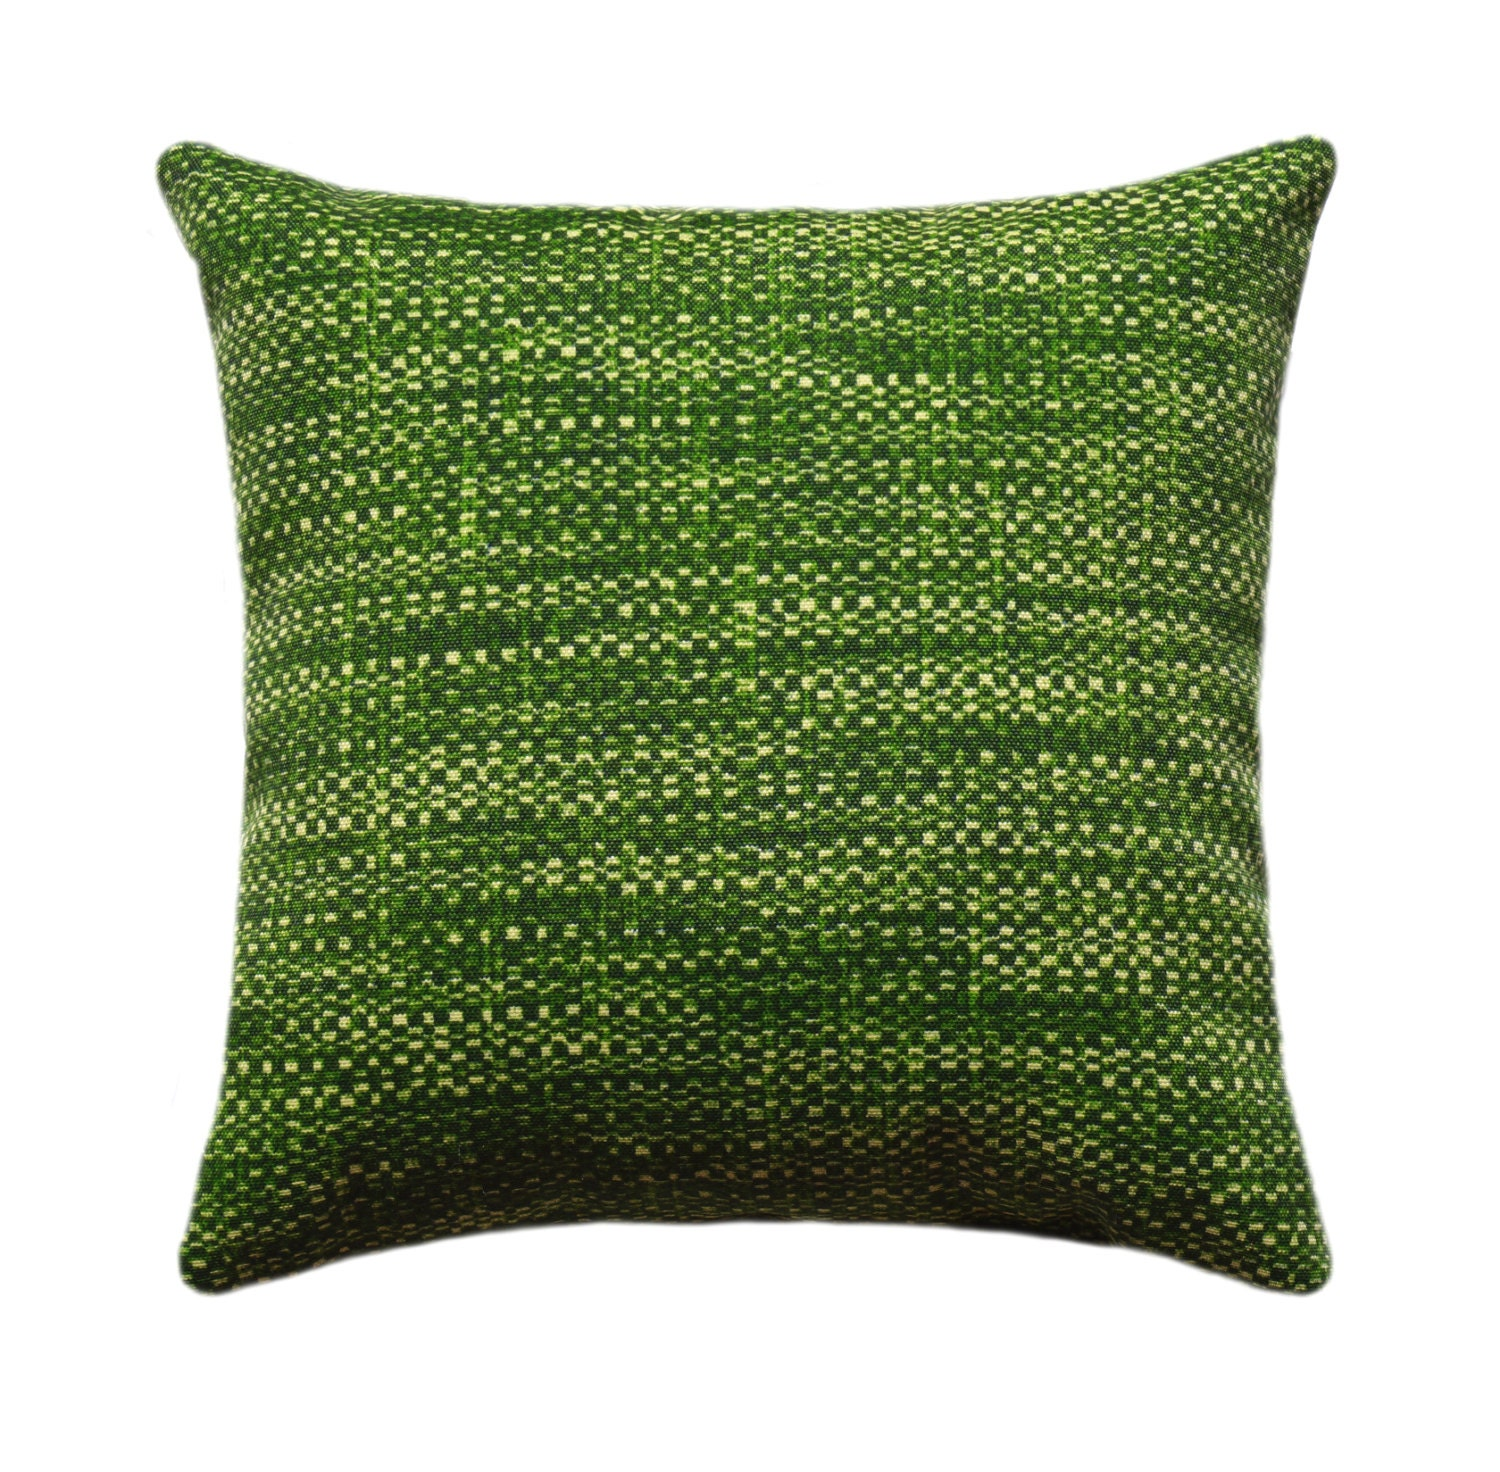 Green Outdoor Pillow Covers Solid Pillows Outdoor Throw